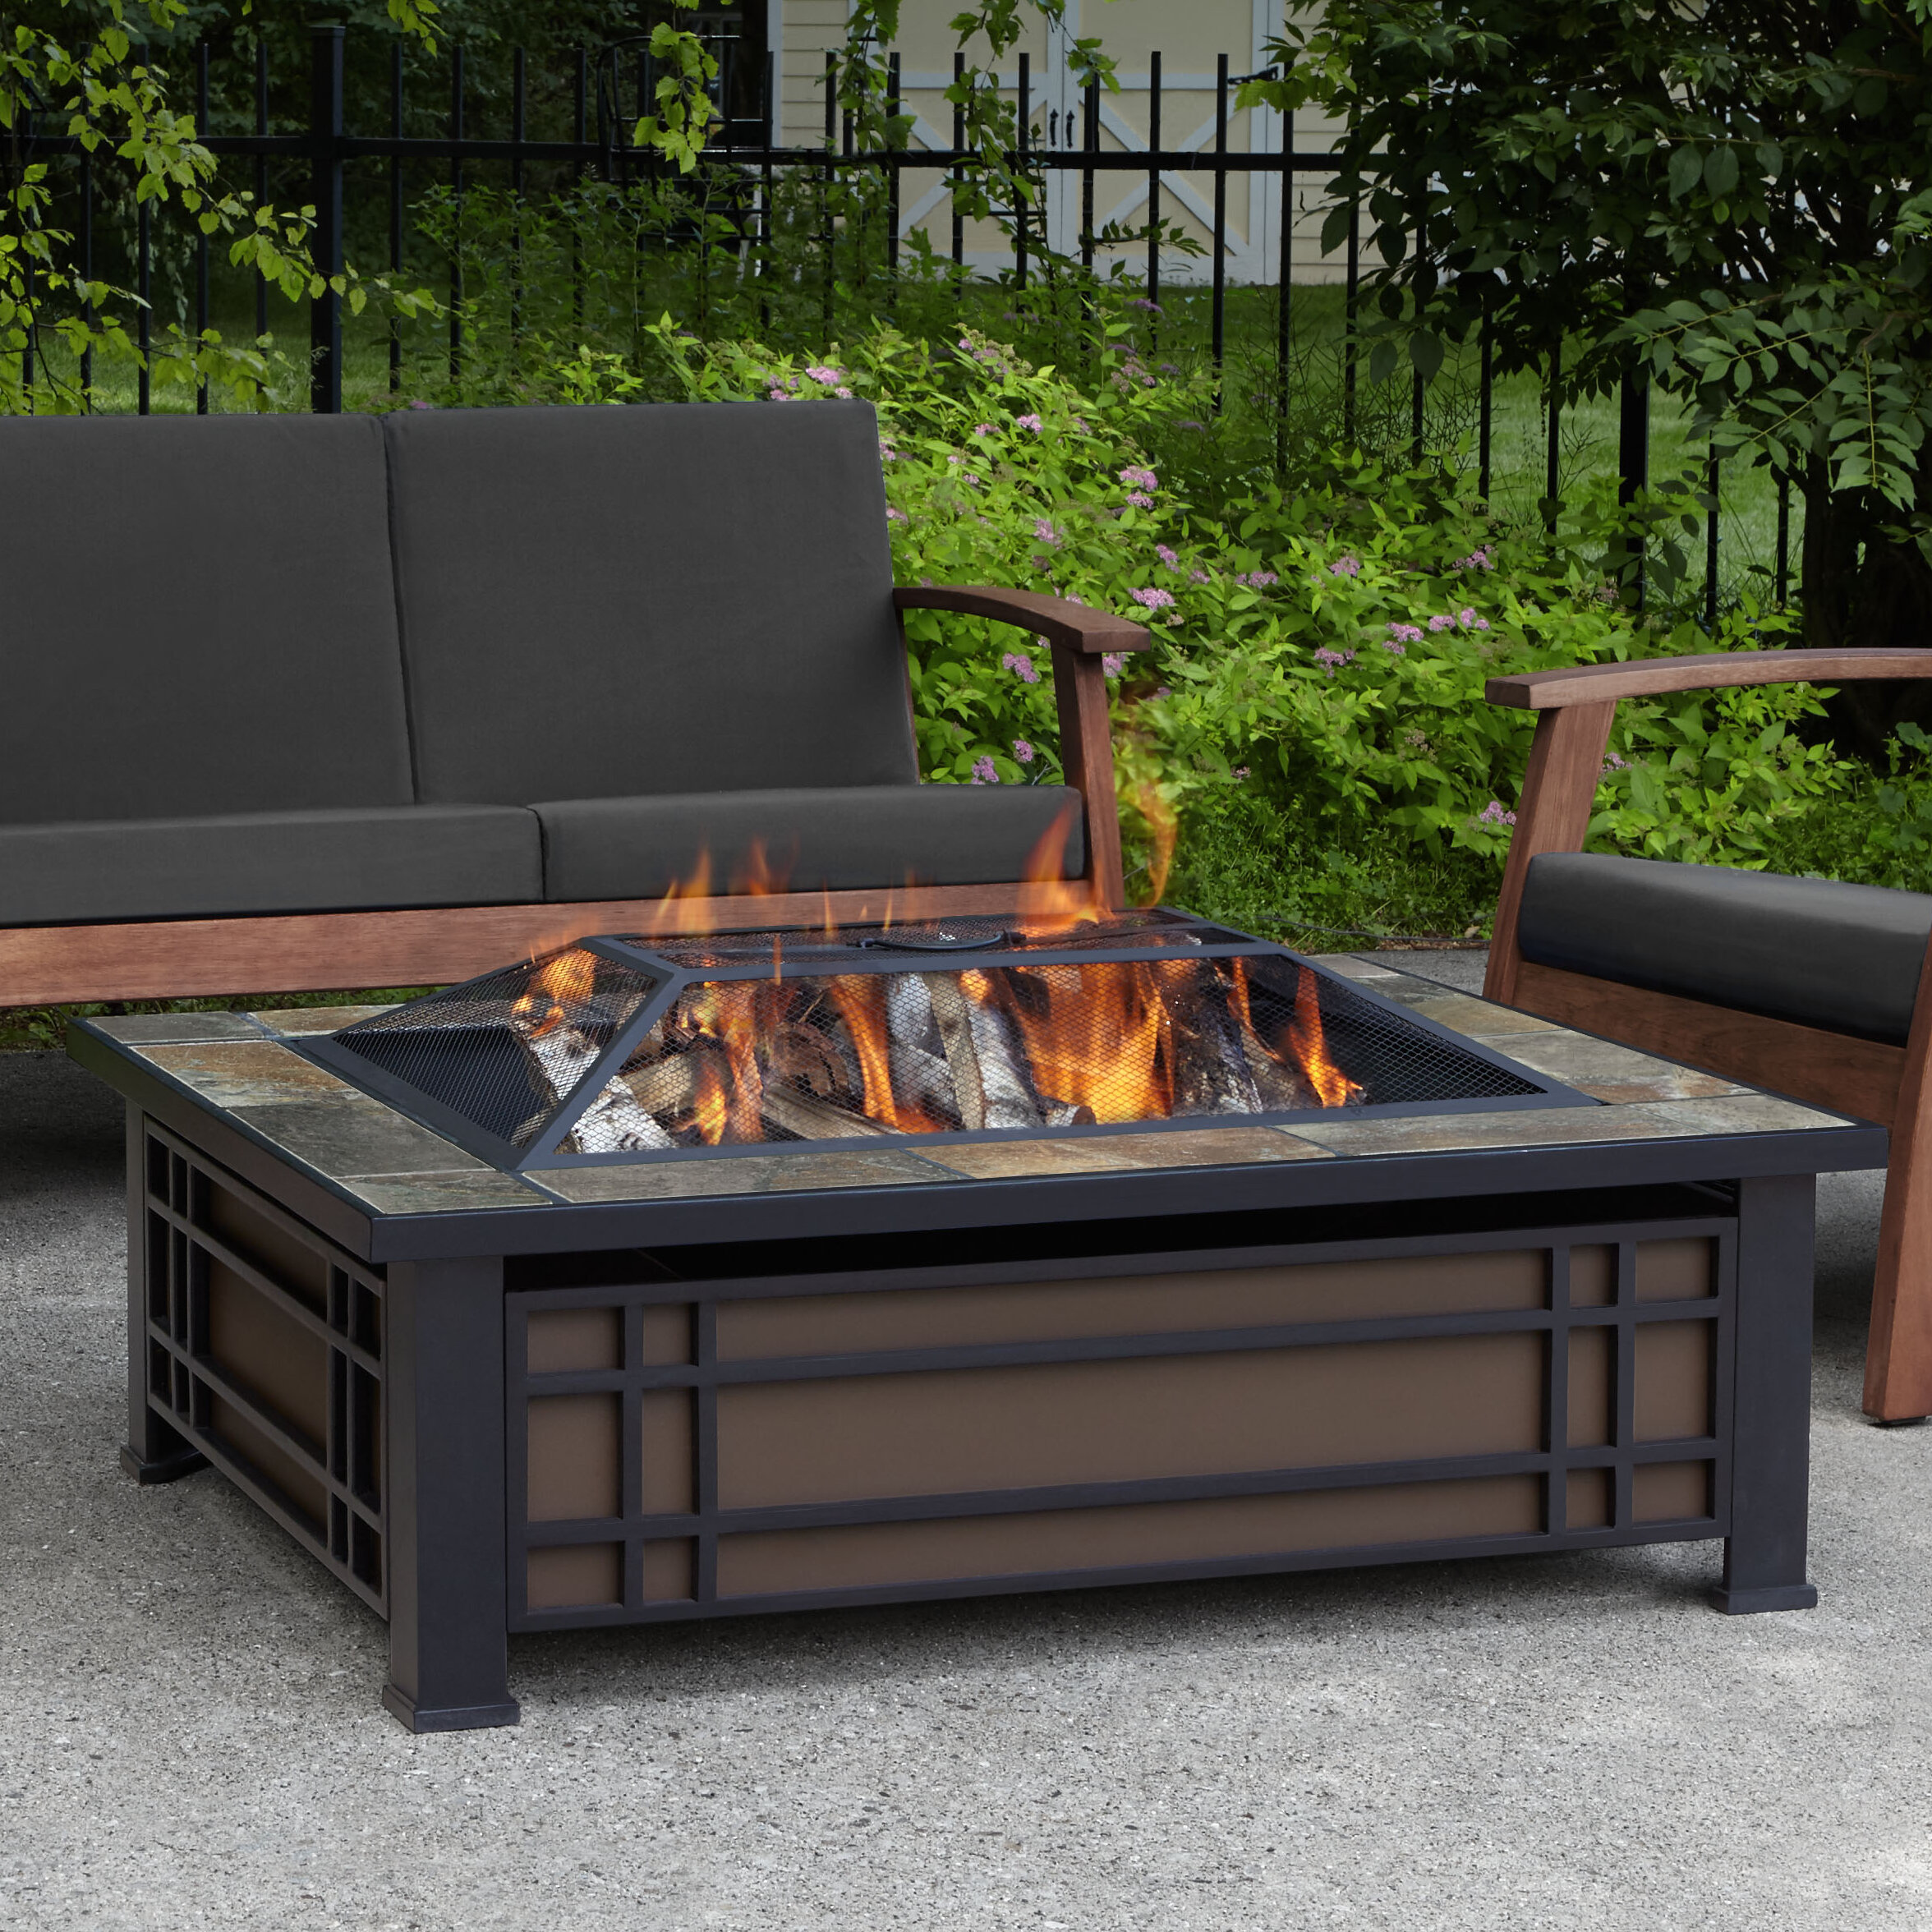 Wood Burning Fire Pit Tables You Ll Love In 2021 Wayfair